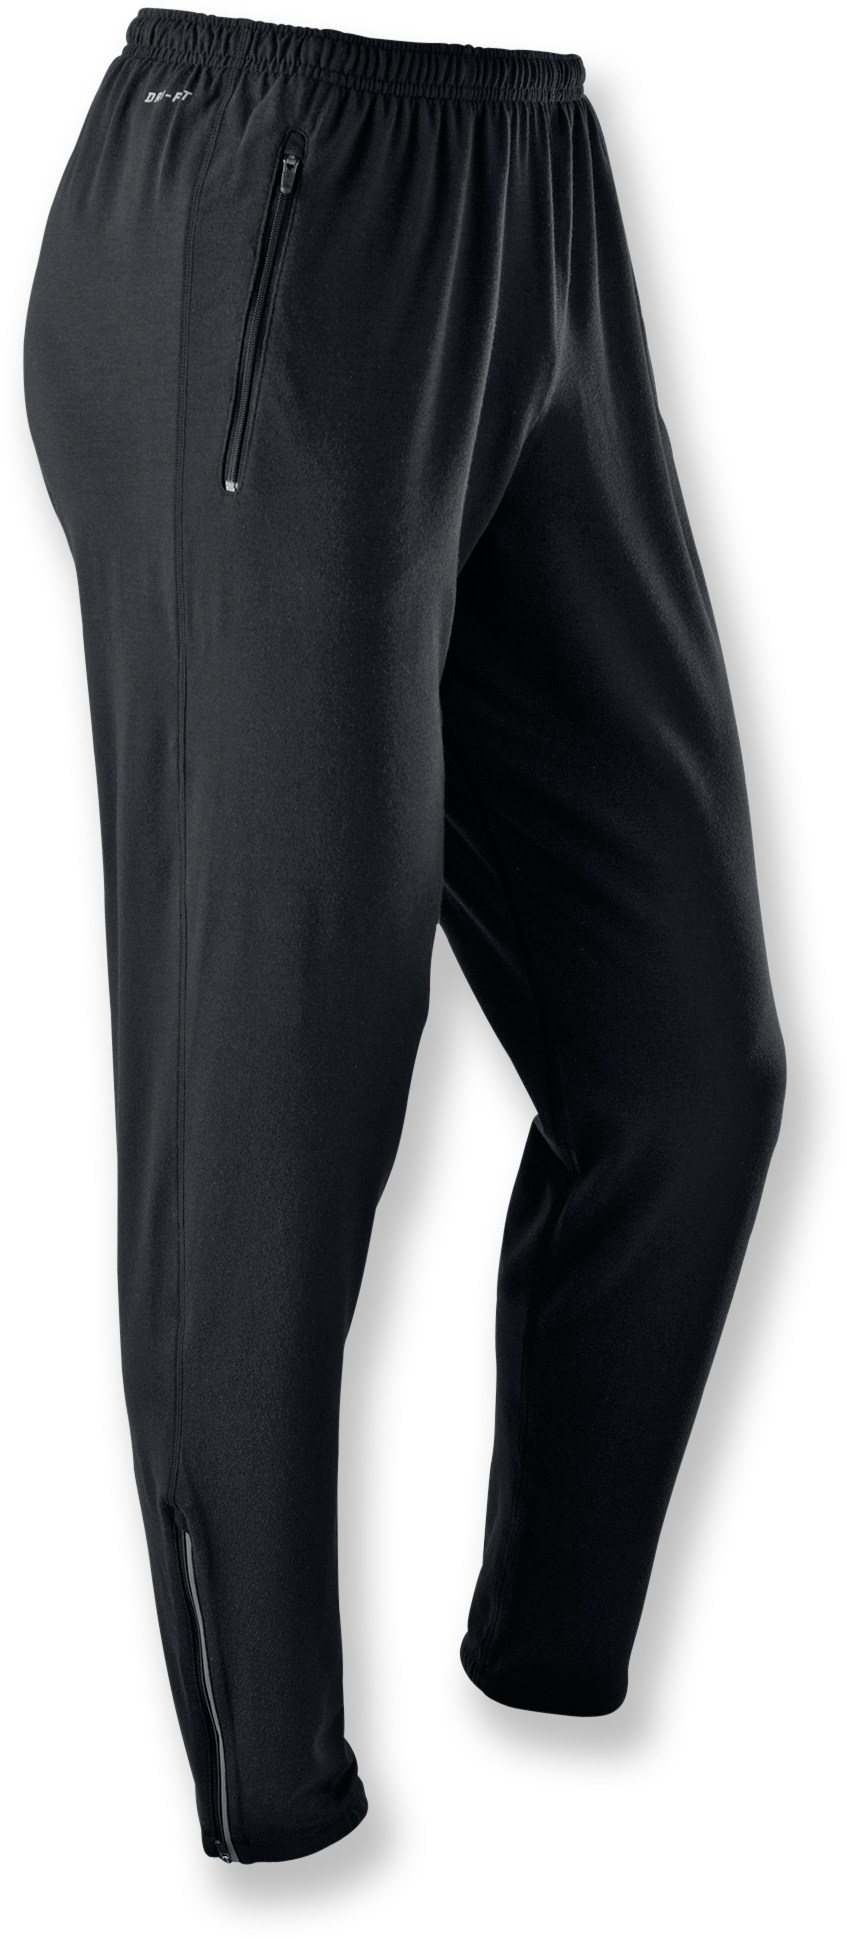 Fitness Nike Perfect Track Pants - Men's